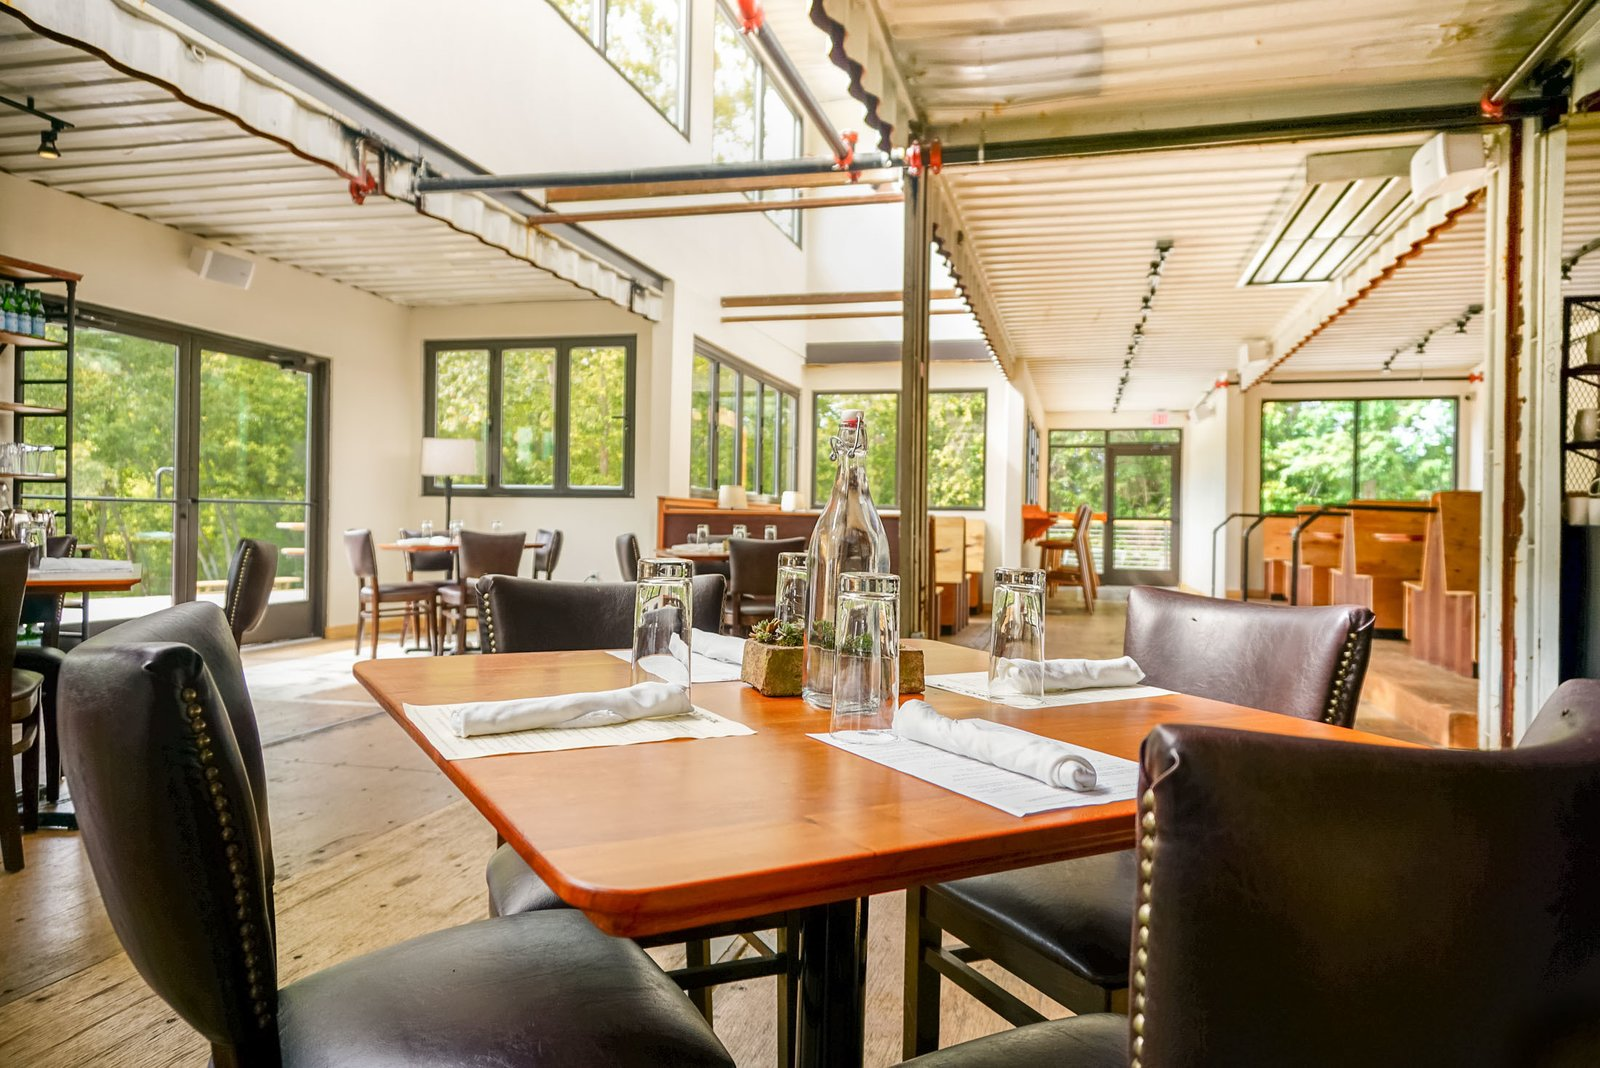 """""""I think [containers] are great building components, if like all building components, they are used in a manner that uses their inherent efficiencies and attributes,"""" Alexander said.  Shipping Containers by Dwell from A Restaurant Constructed from 19 Salvaged Shipping Containers"""